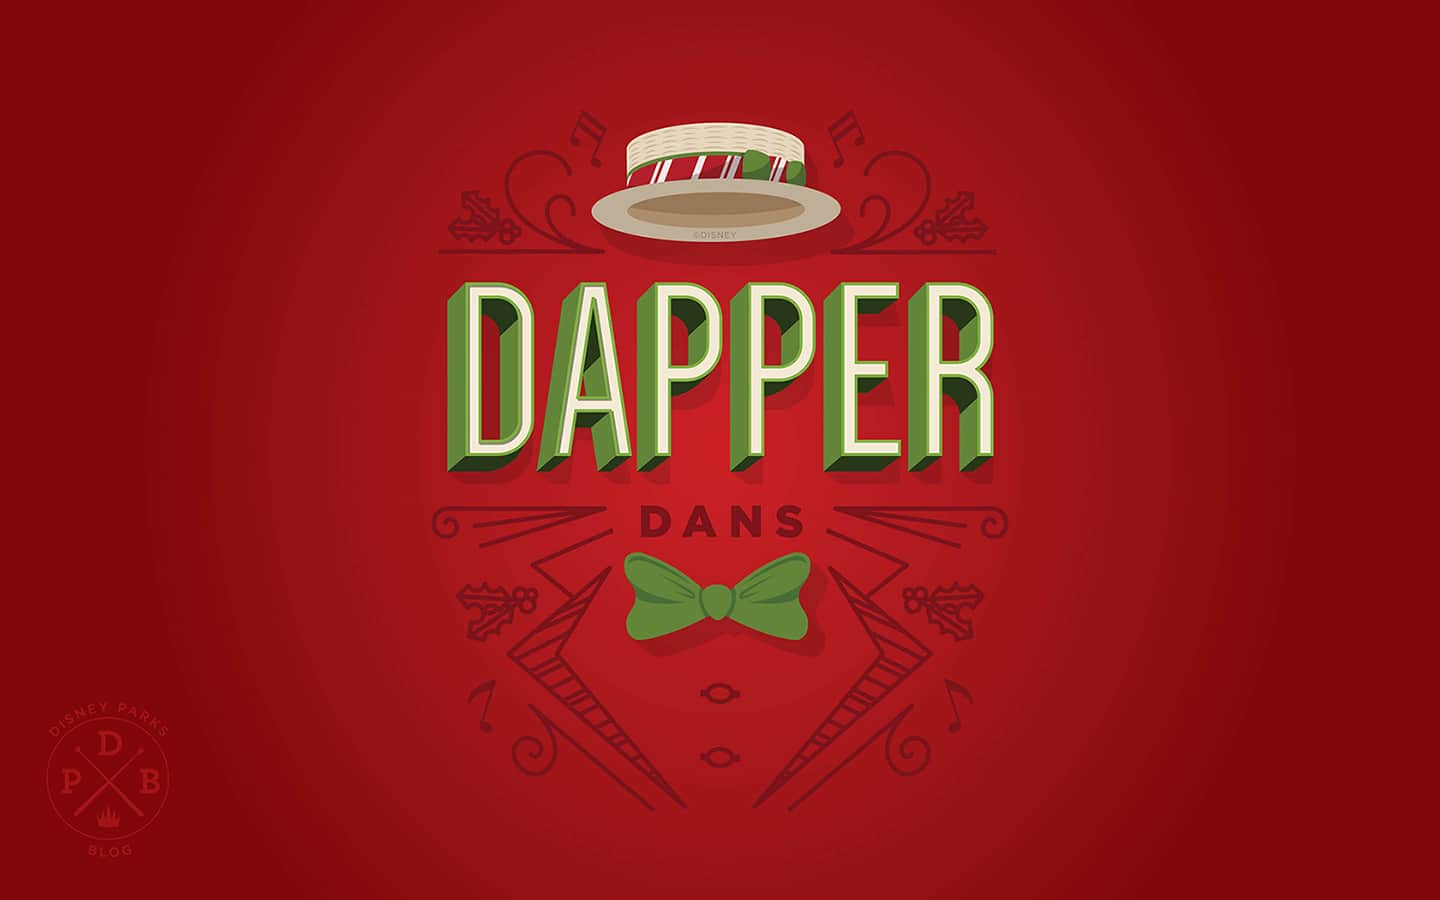 Disney Parks Blog Dapper Dans Wallpaper